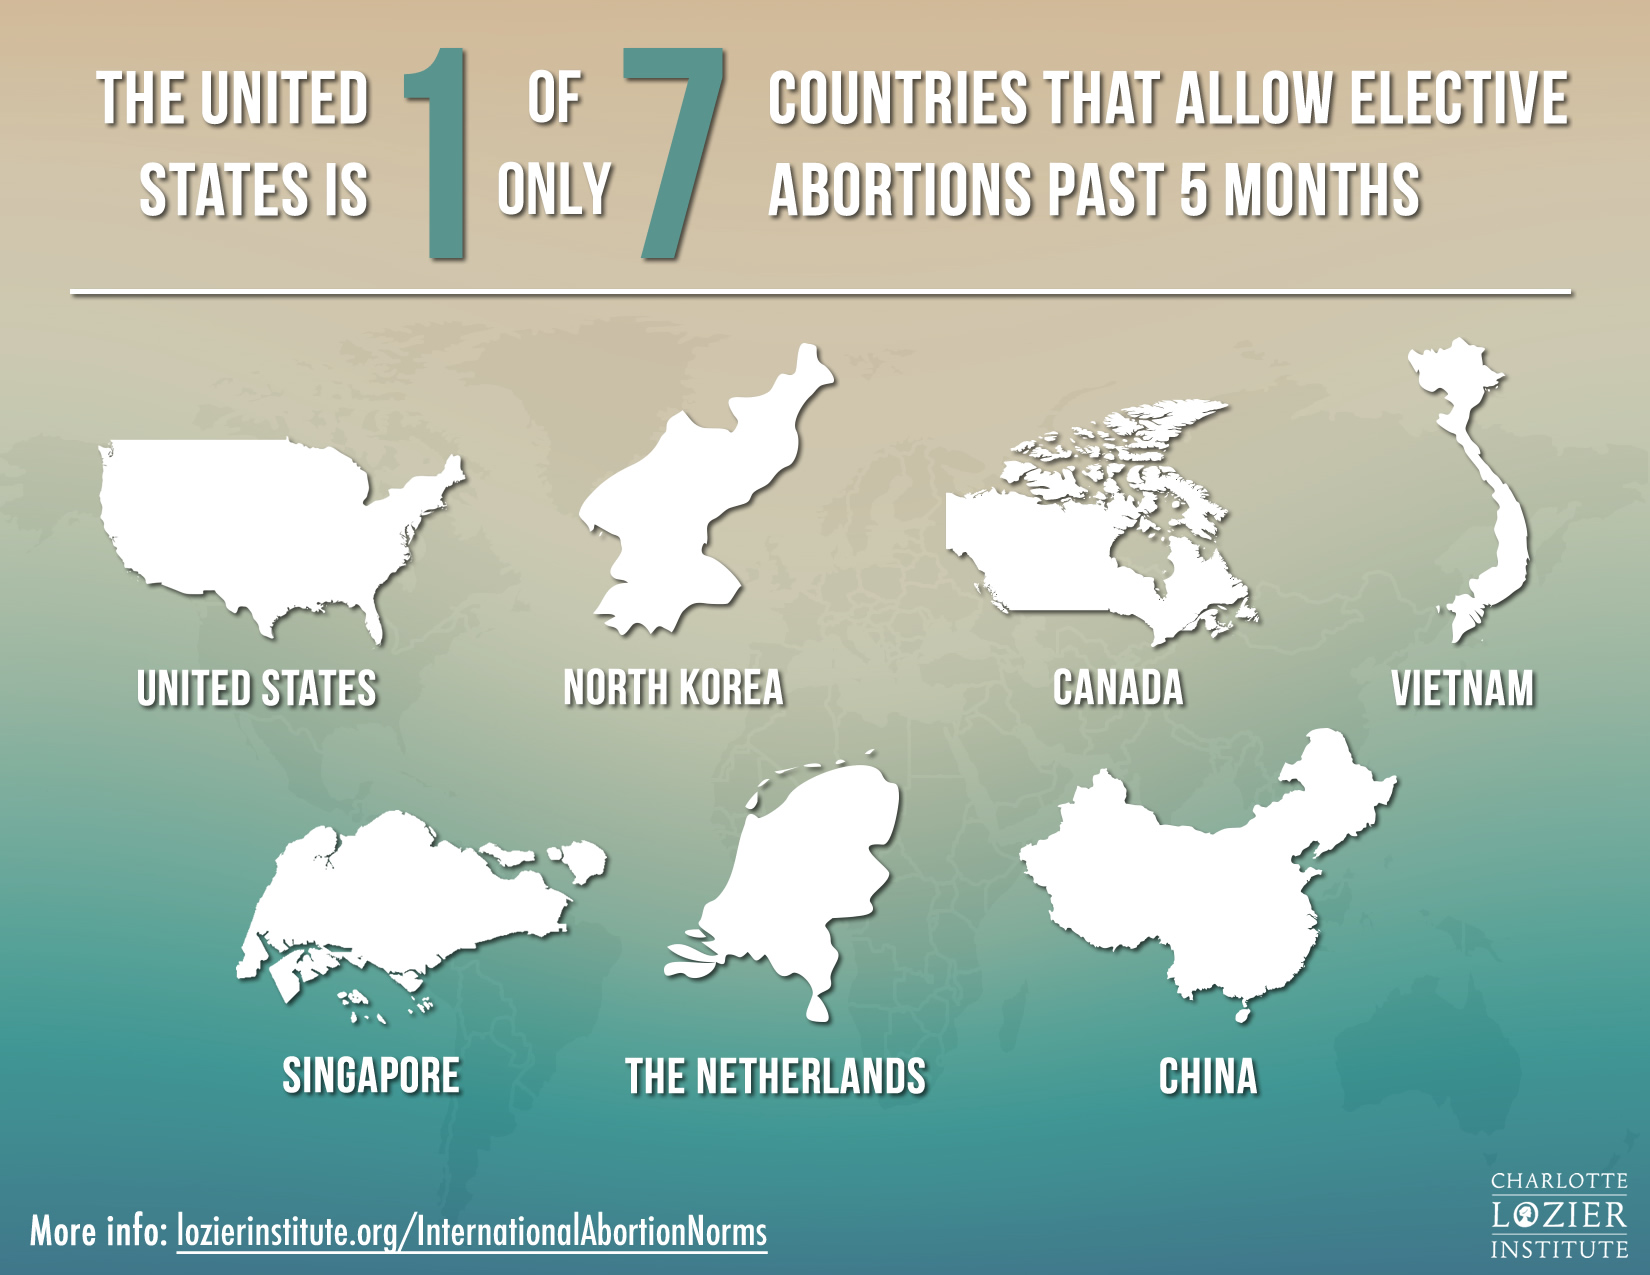 Countries allowing elective abortions past 5 months